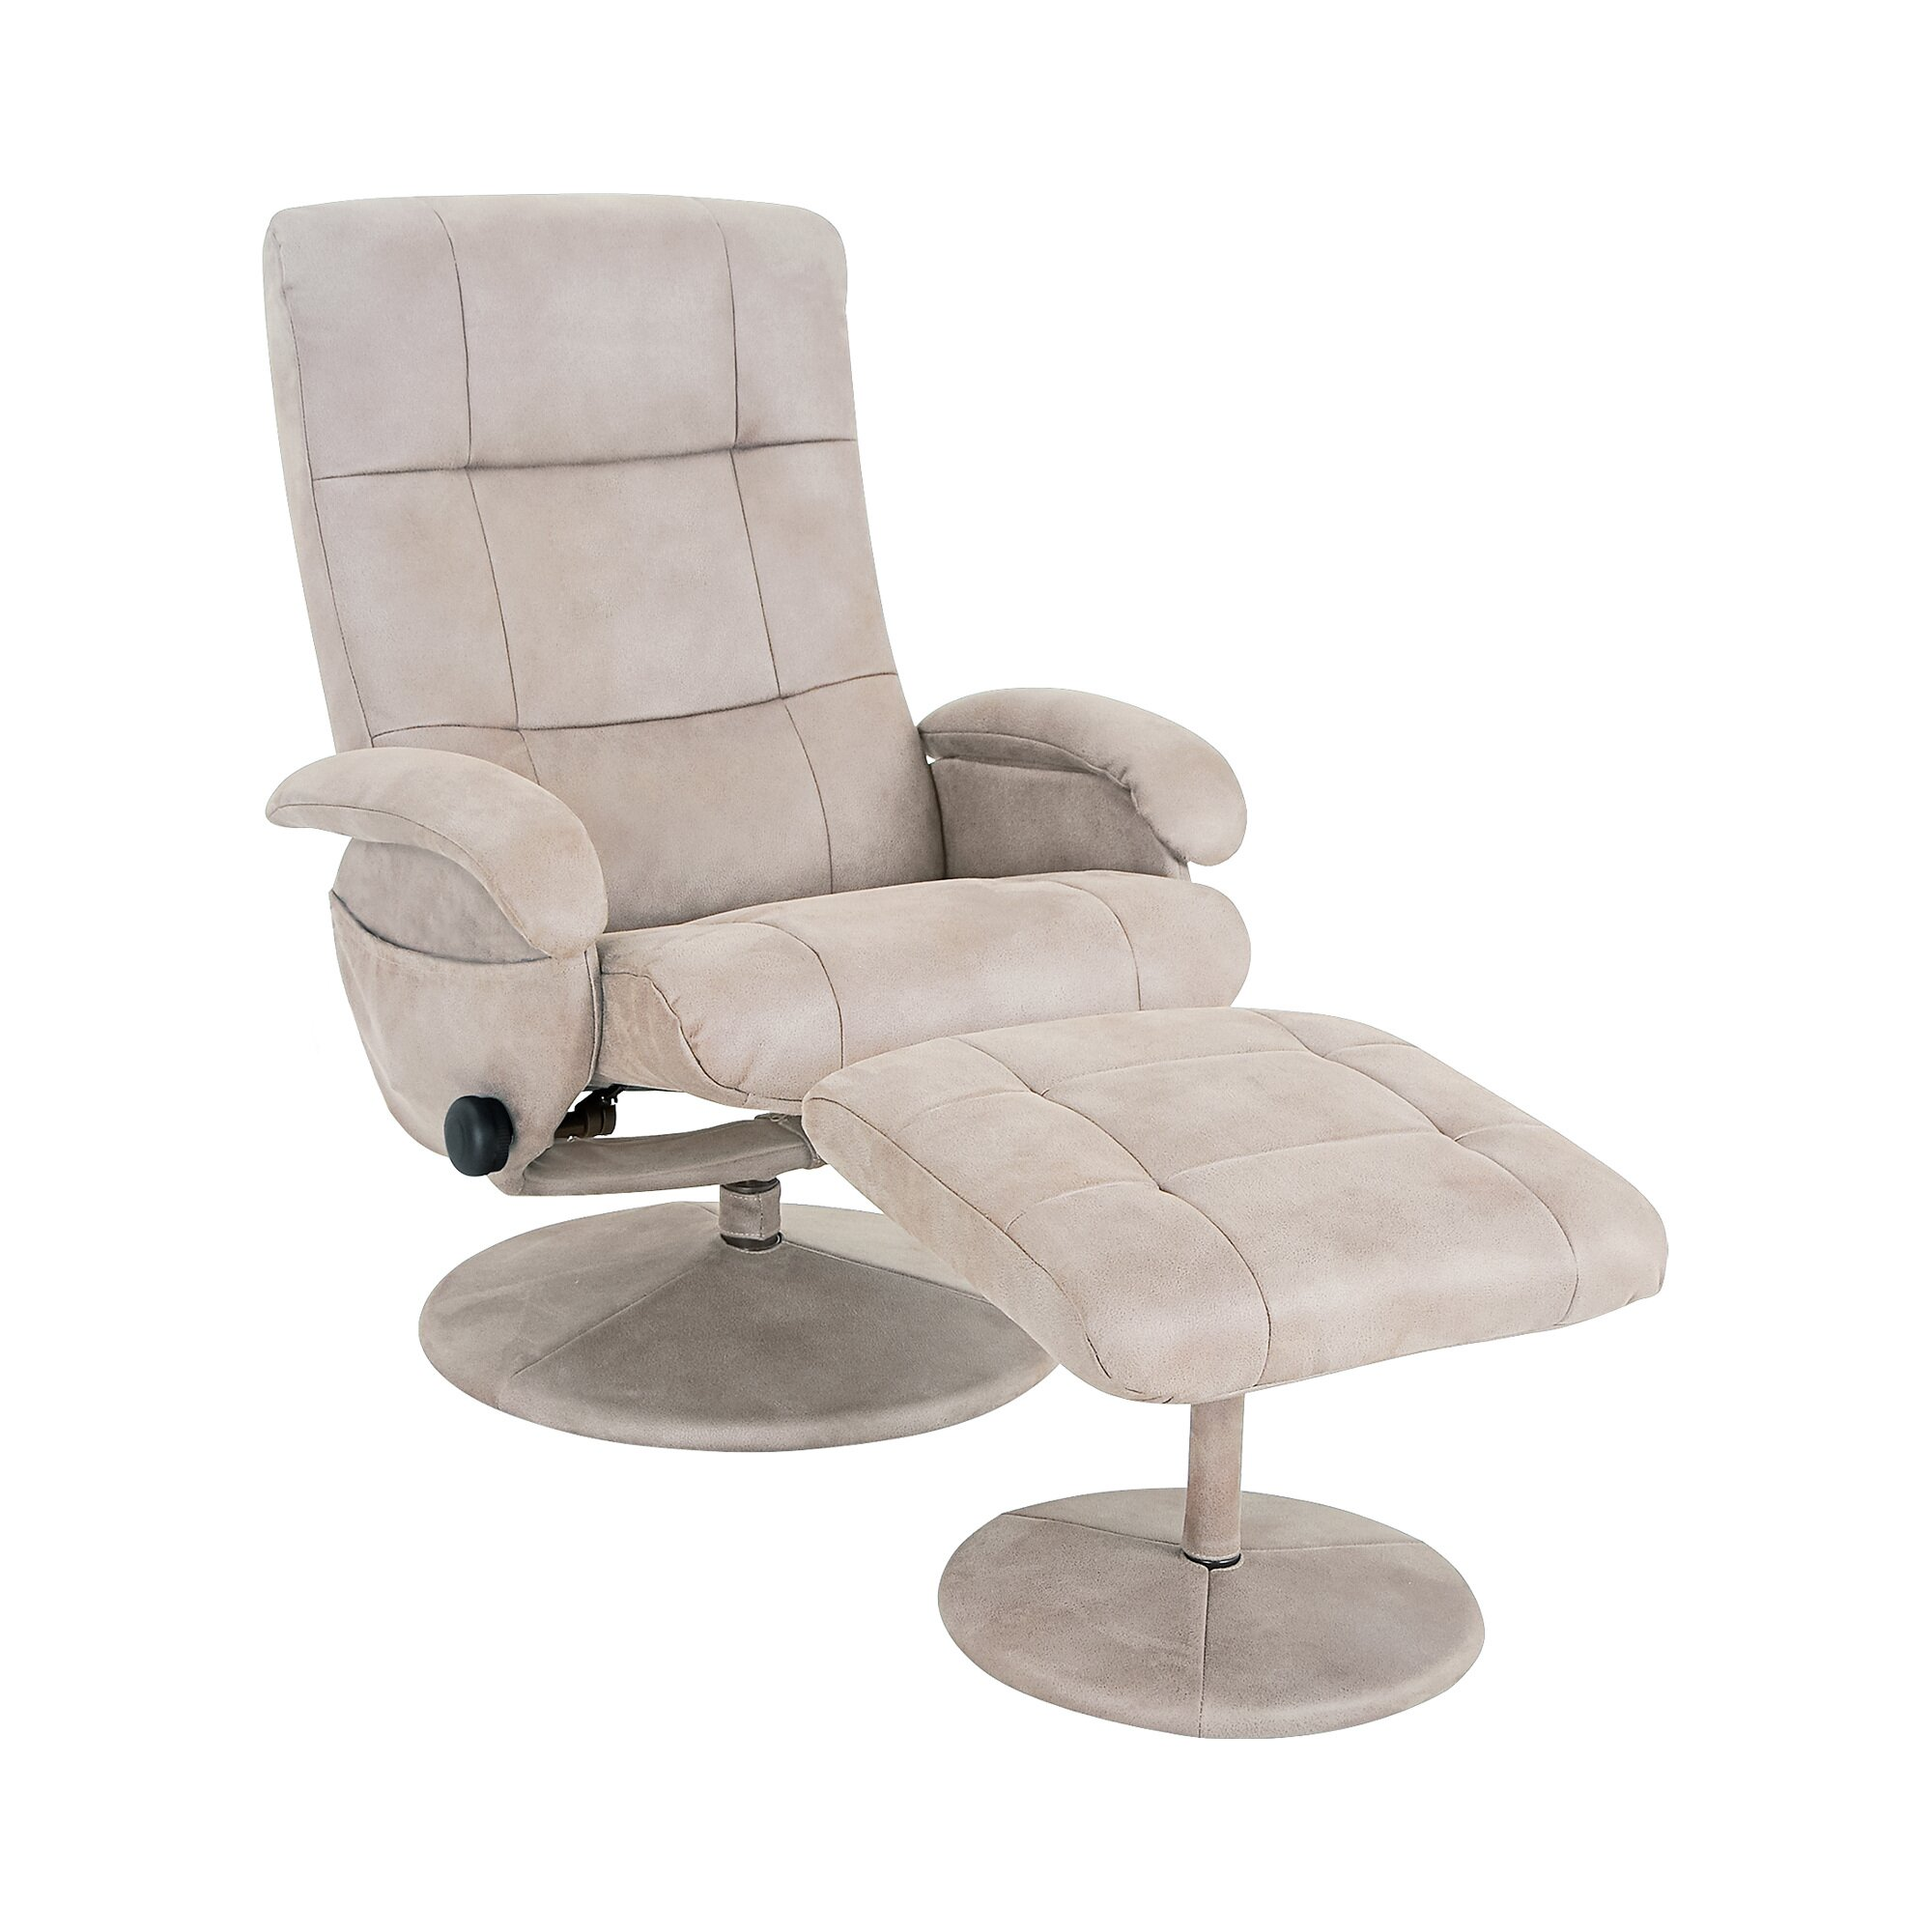 """Image of Massagesessel """"Relax"""", beige"""